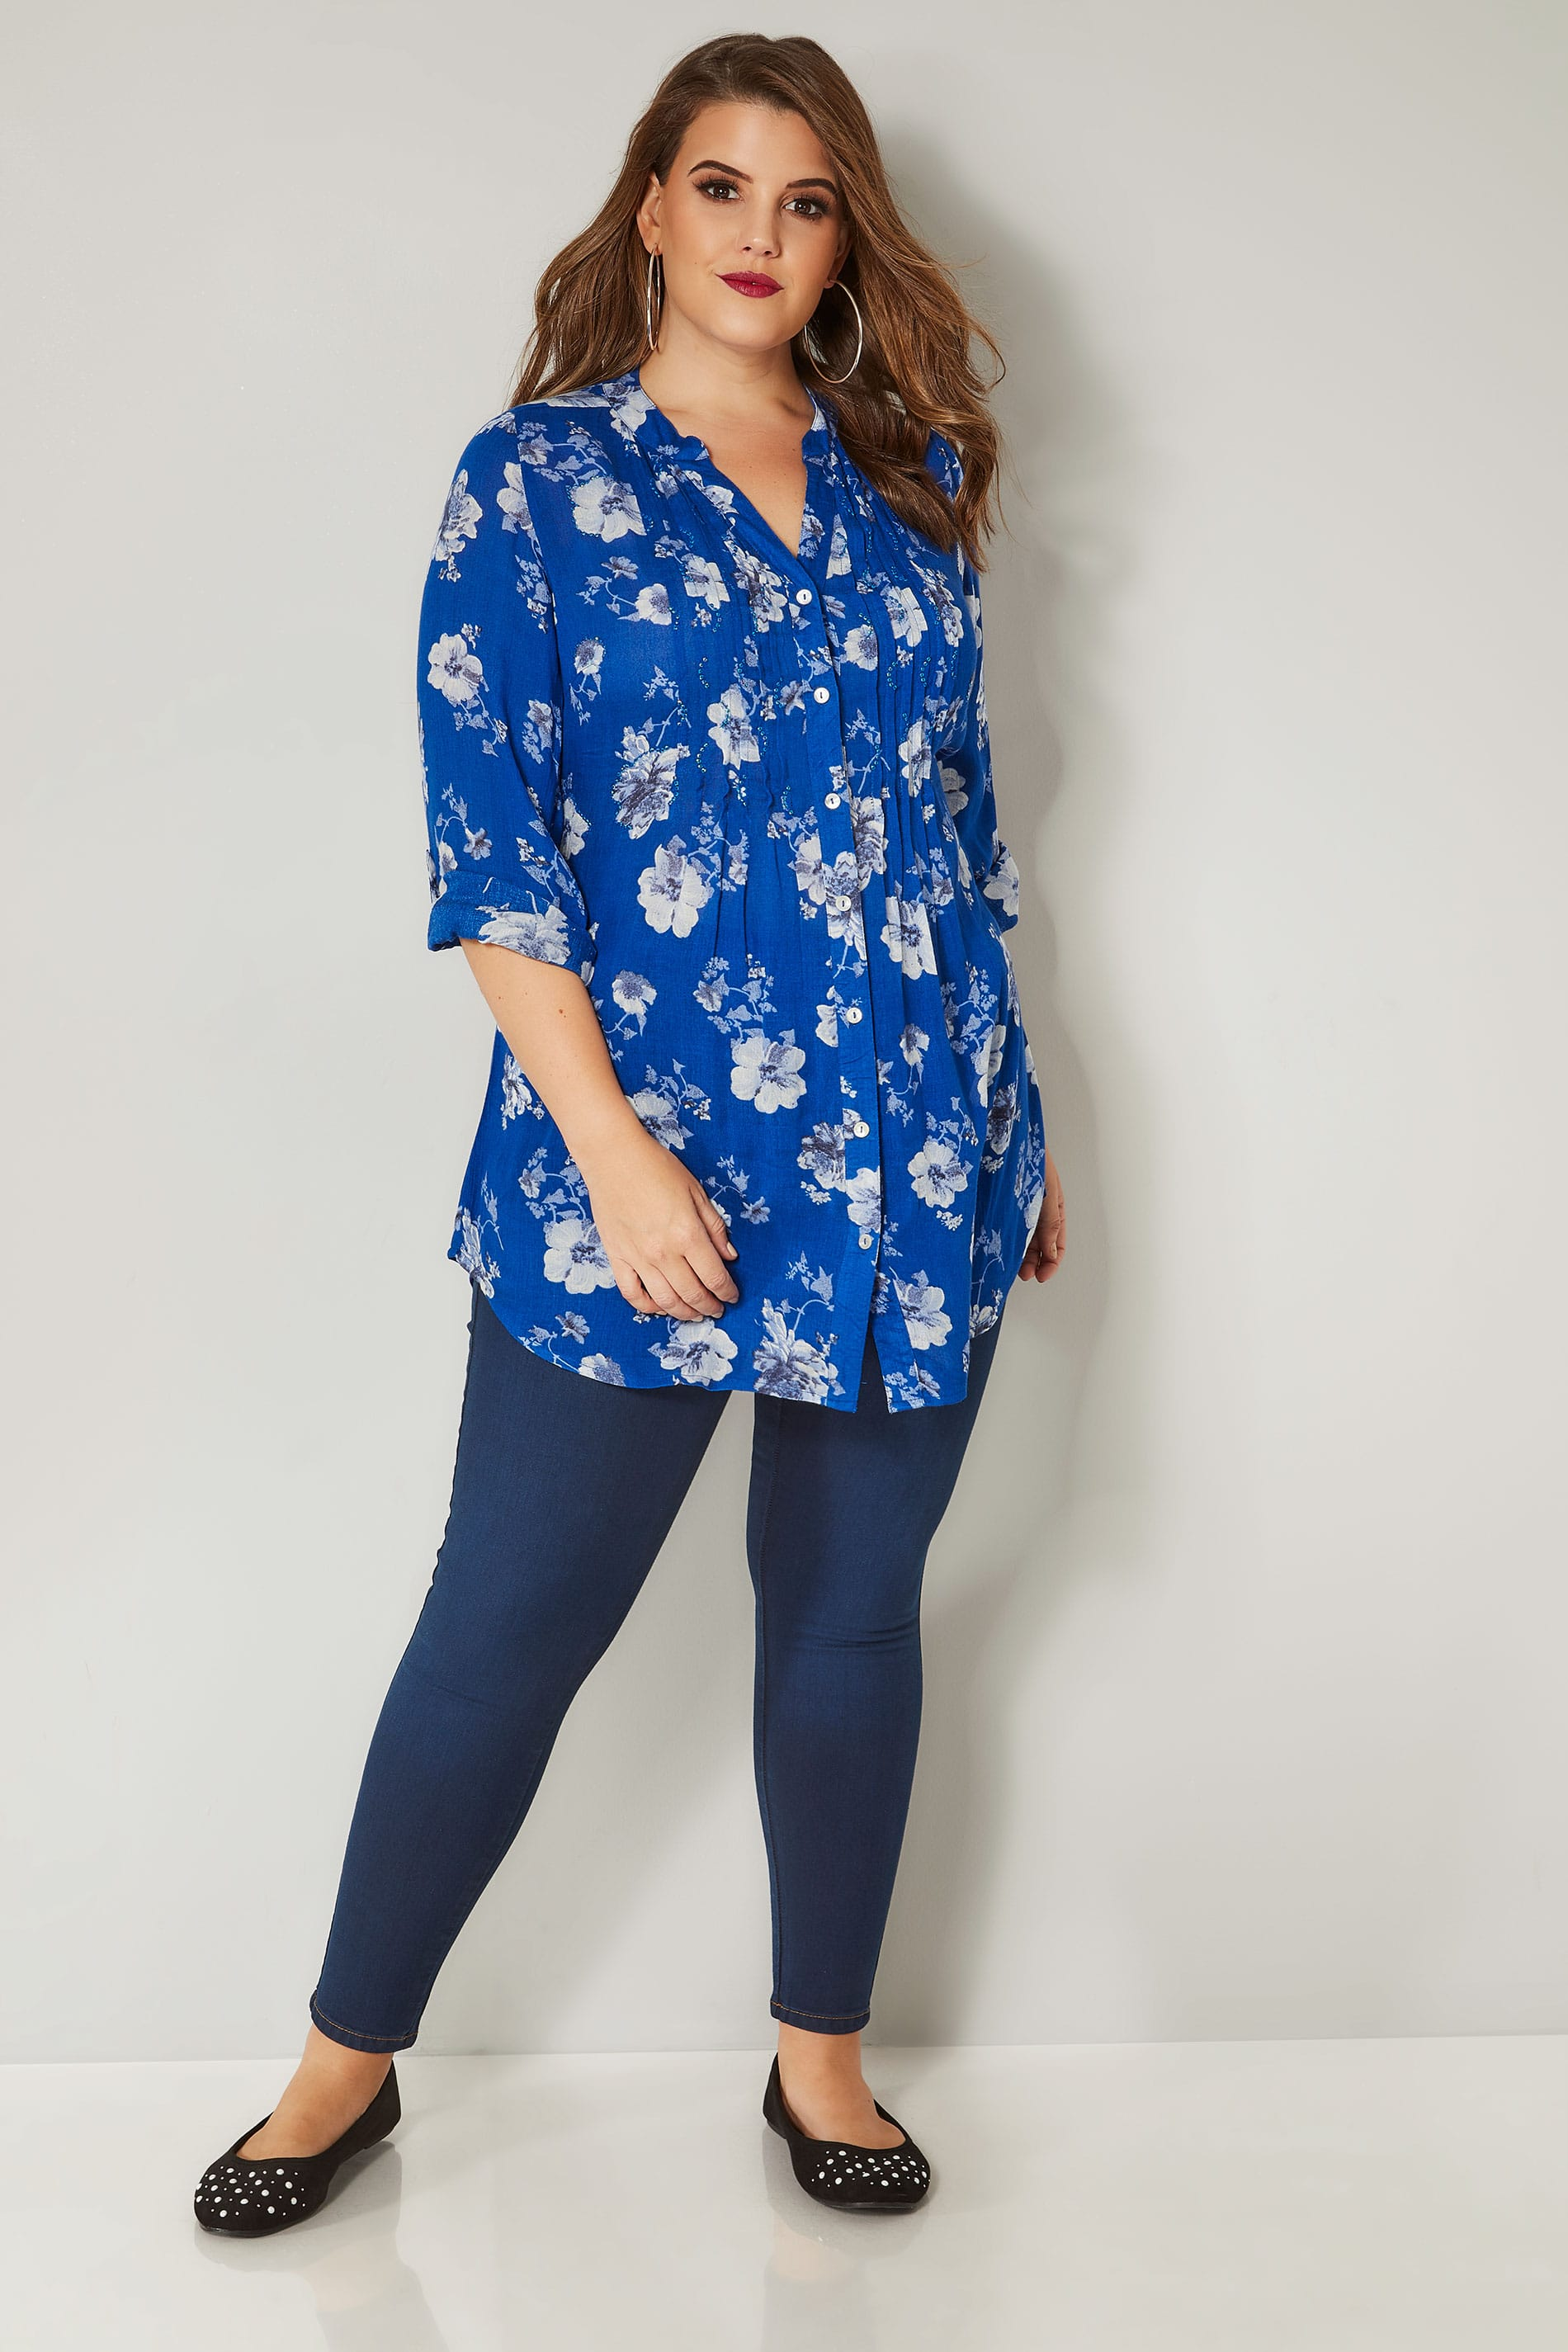 cobalt blue floral pintuck longline blouse with sequin detail  plus size 16 to 36